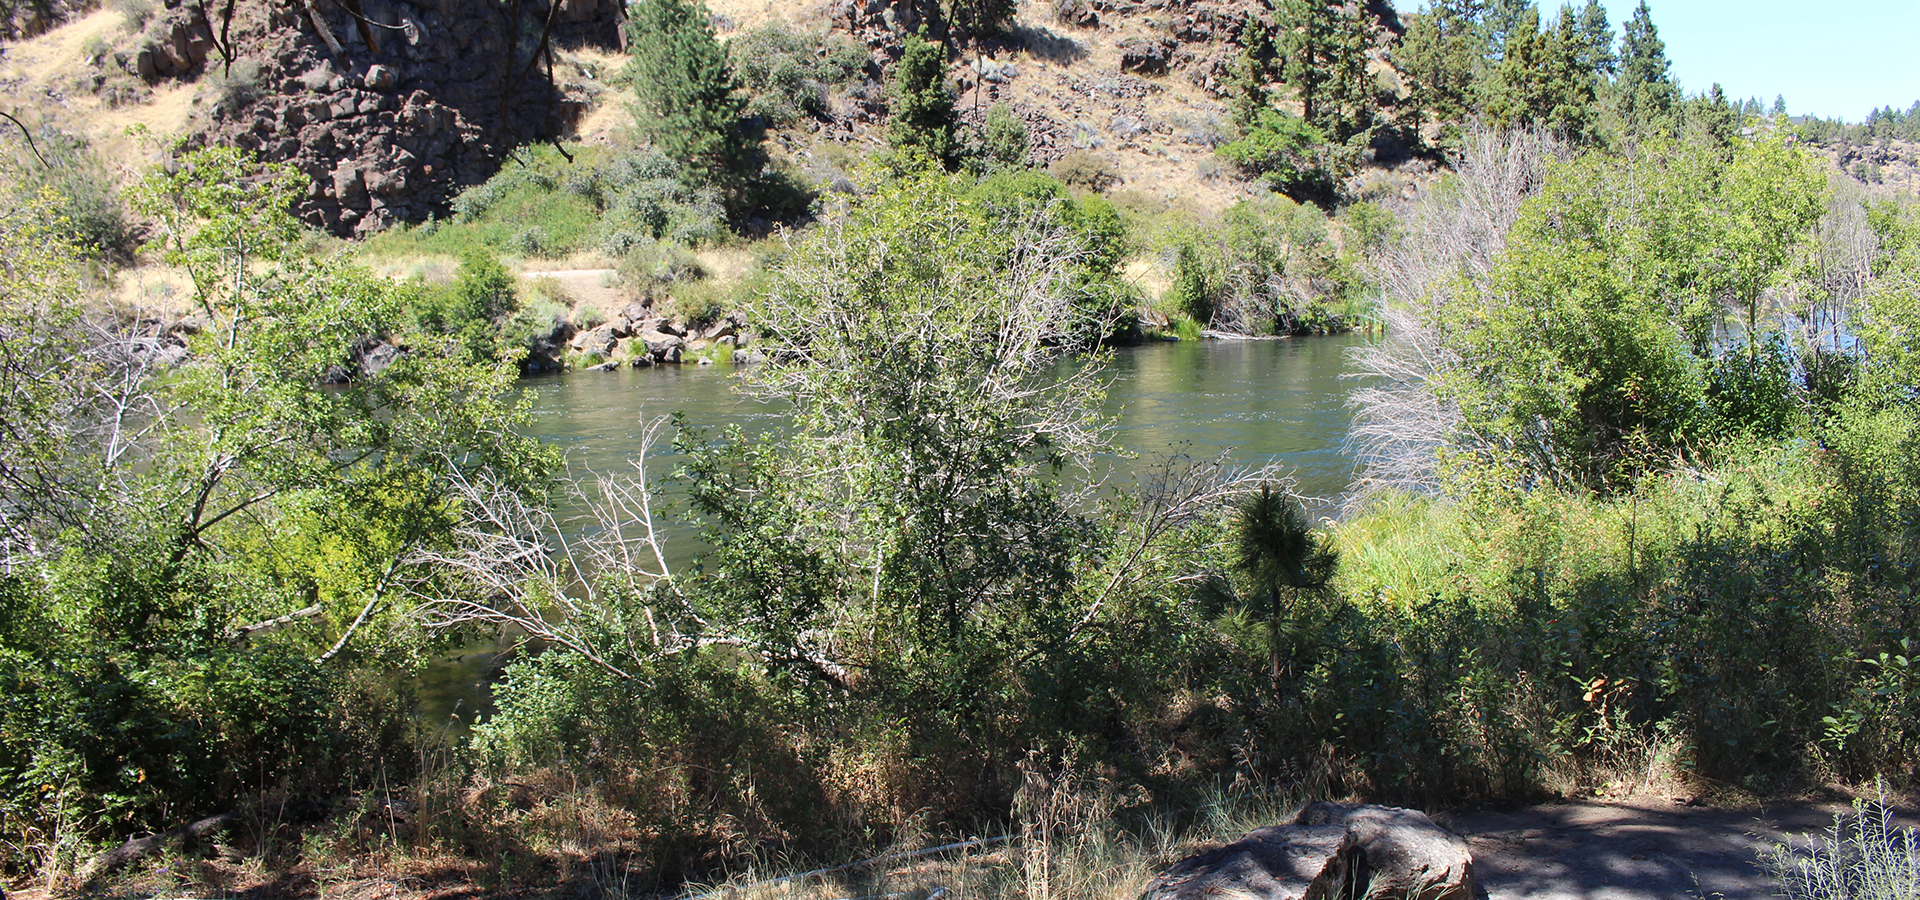 Deschutes River at First Street Rapids Park